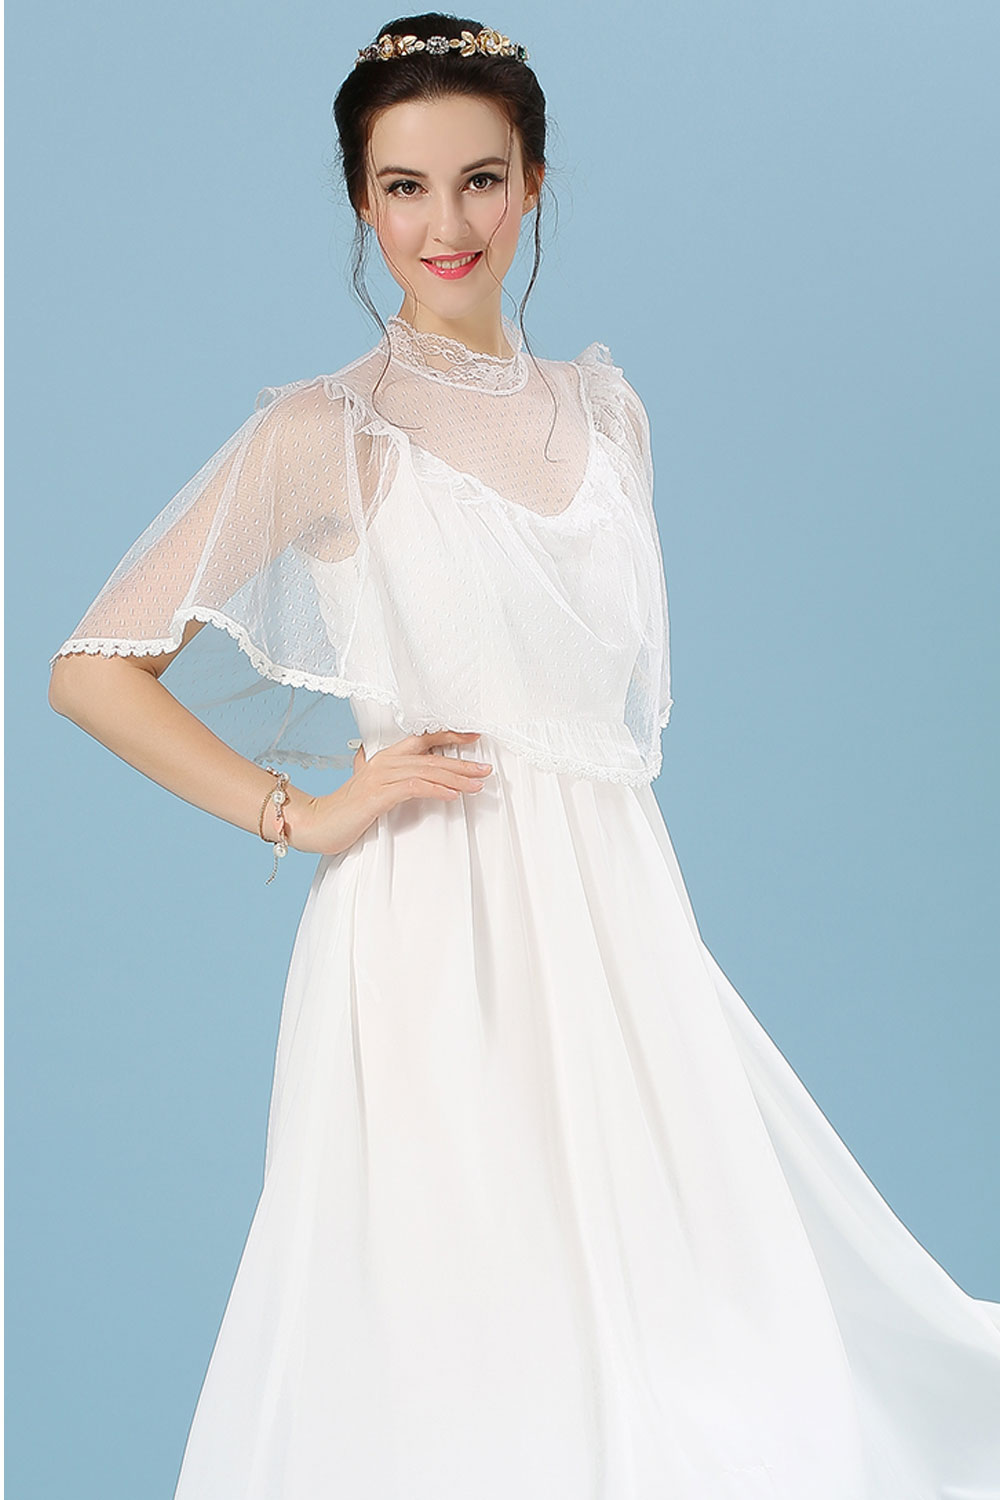 WOMENS FAIRY STYLE BRIDES LONG THIN DRESS WHITE – Unomatch Shop